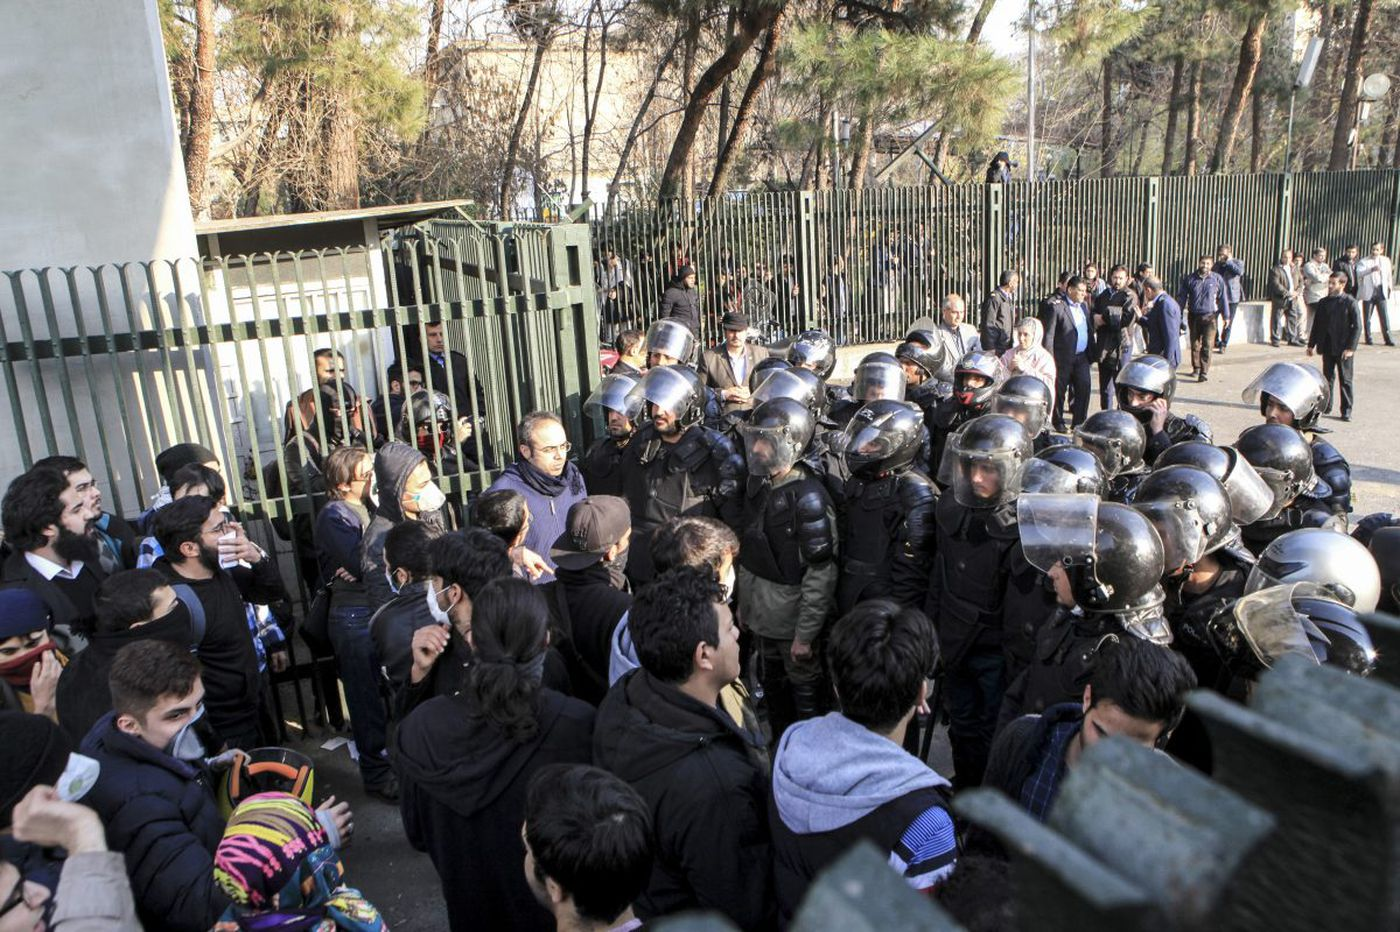 Understanding the protests in Iran means digging much deeper than Trump's tweets | Trudy Rubin